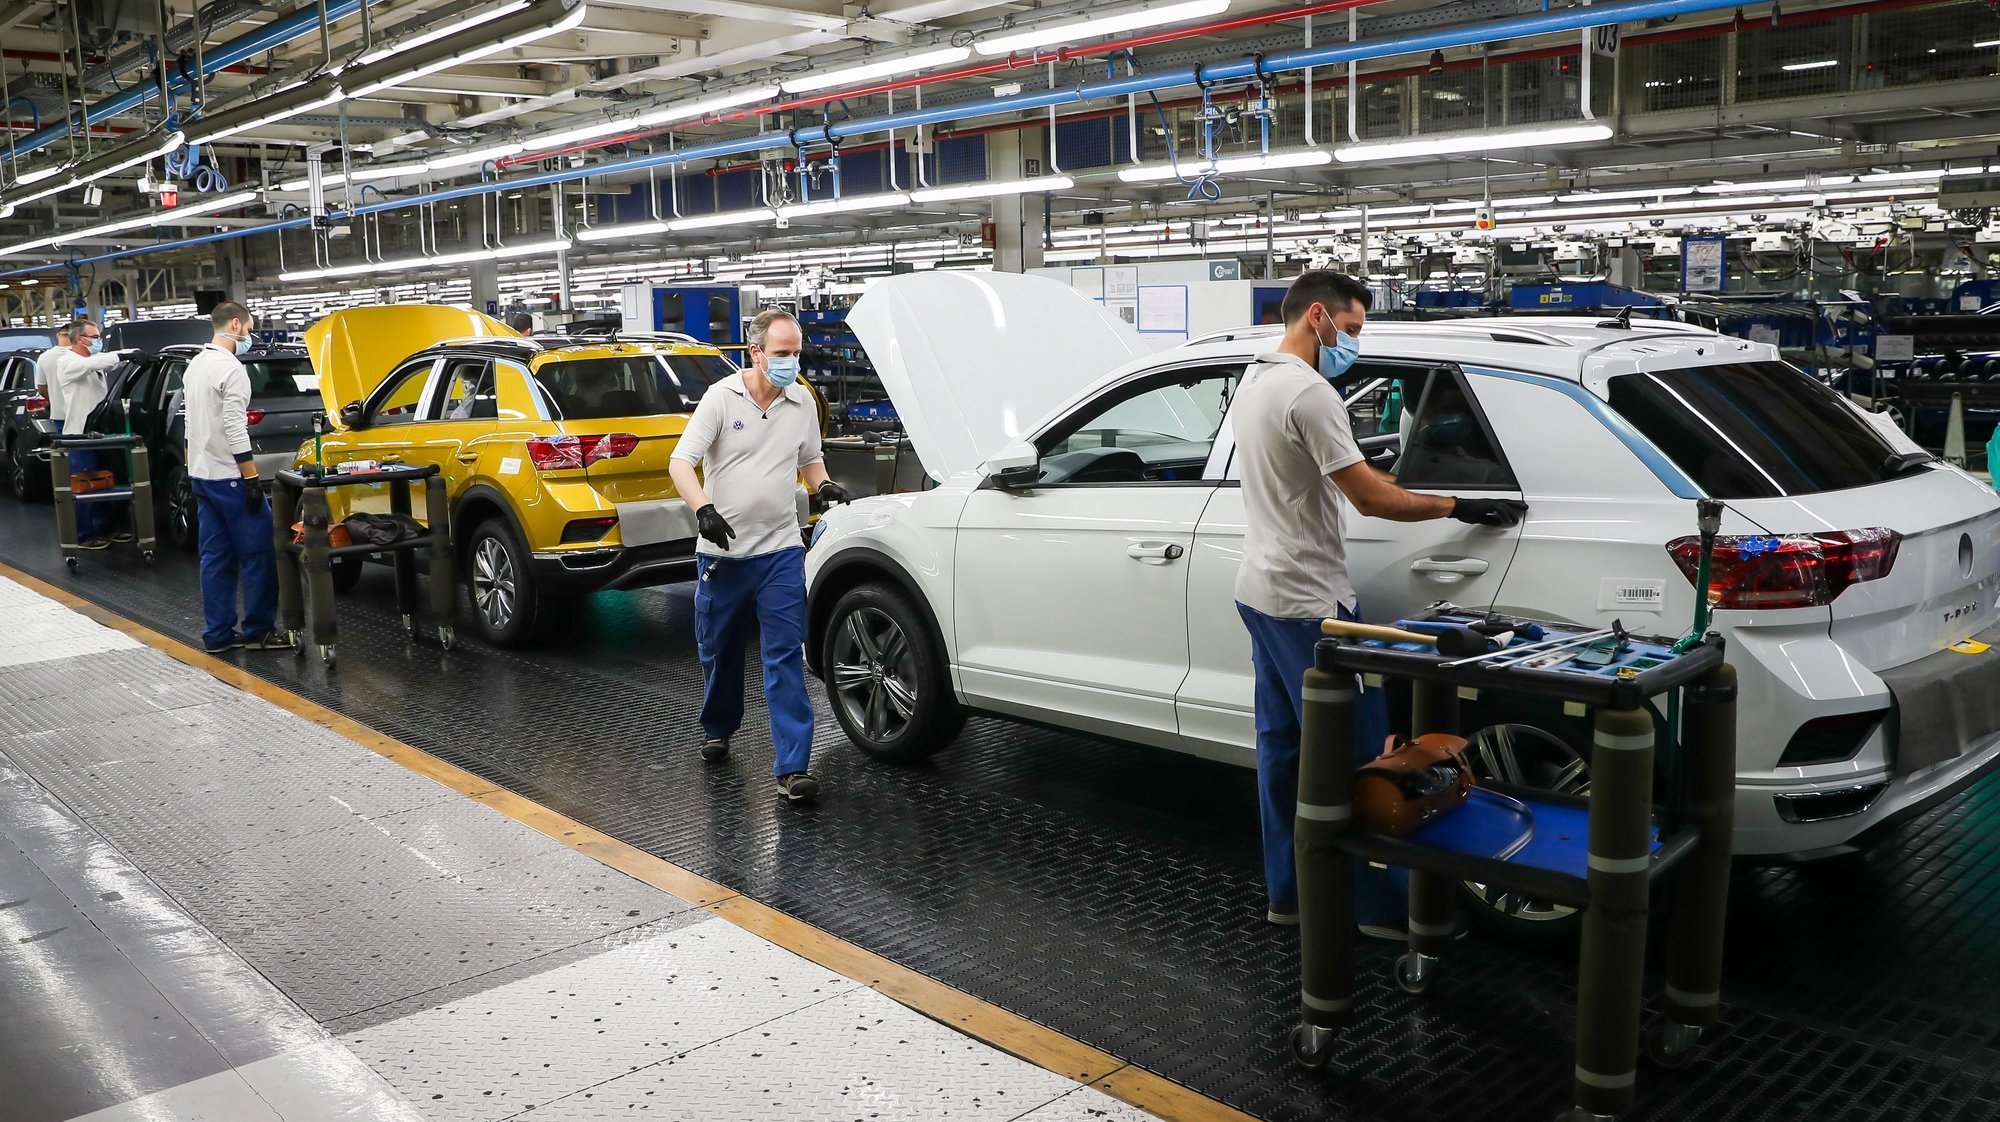 Employees work on the construction of Volkswagen T-Roc at Autoeuropa's plant in Palmela, Setubal, Portugal, 13 May 2020. JOSE SENA GOULAO/LUSA